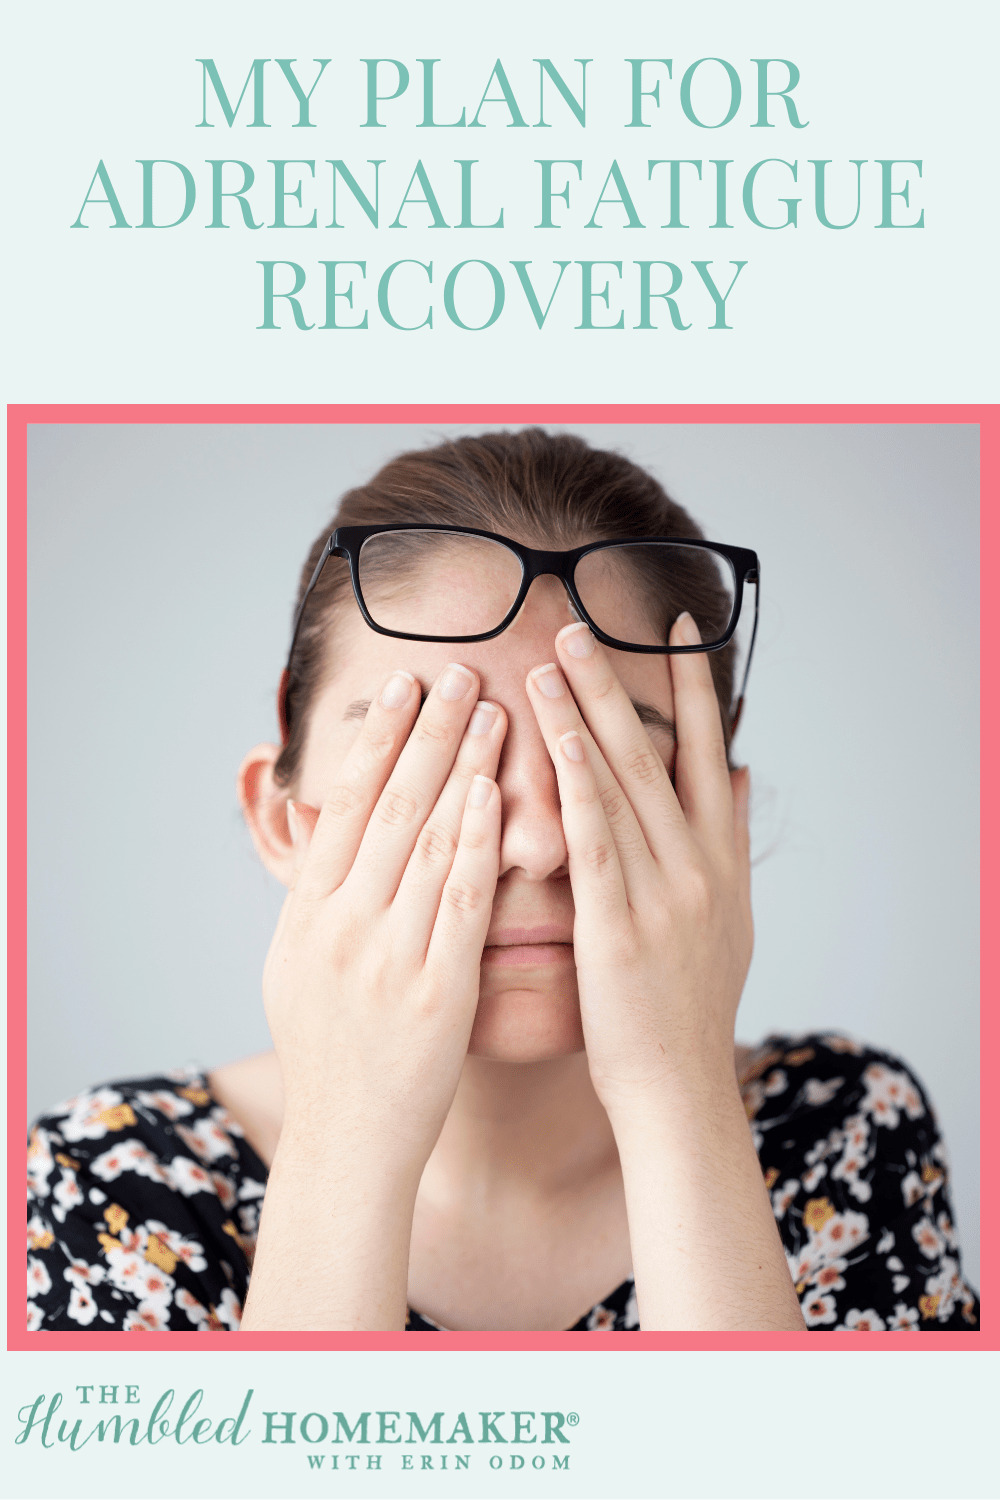 Last week, I shared with you my journey to adrenal fatigue. Today I'm sharing my personal plan for adrenal fatigue recovery.